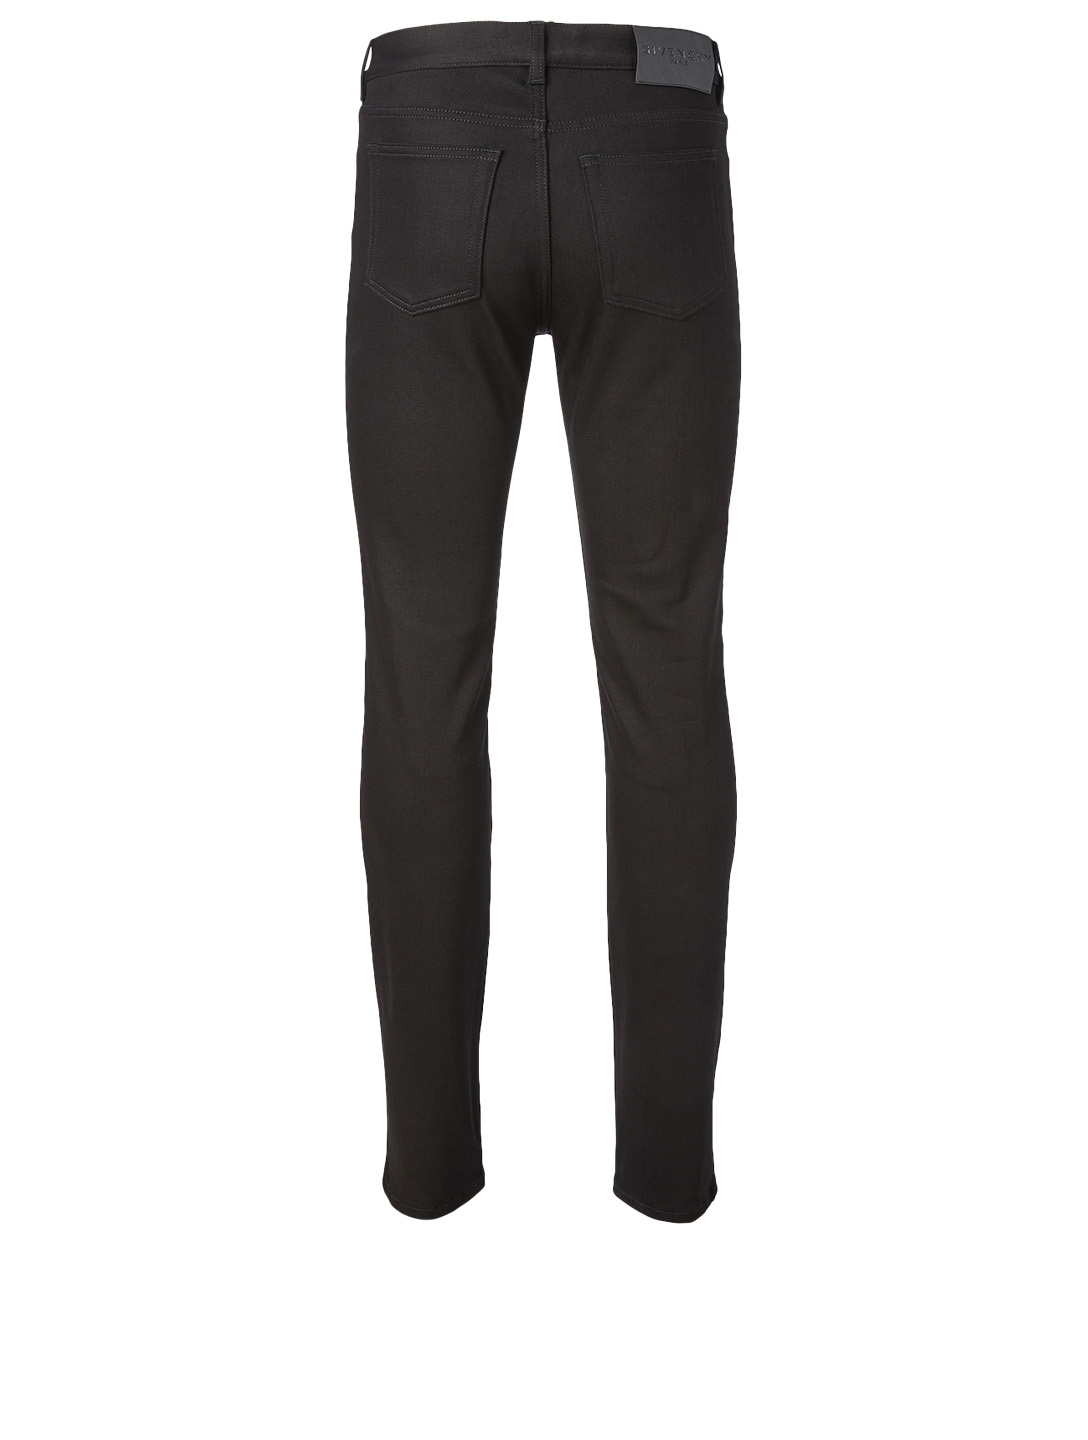 GIVENCHY Cotton Stretch Slim-Fit Jeans Men's Black